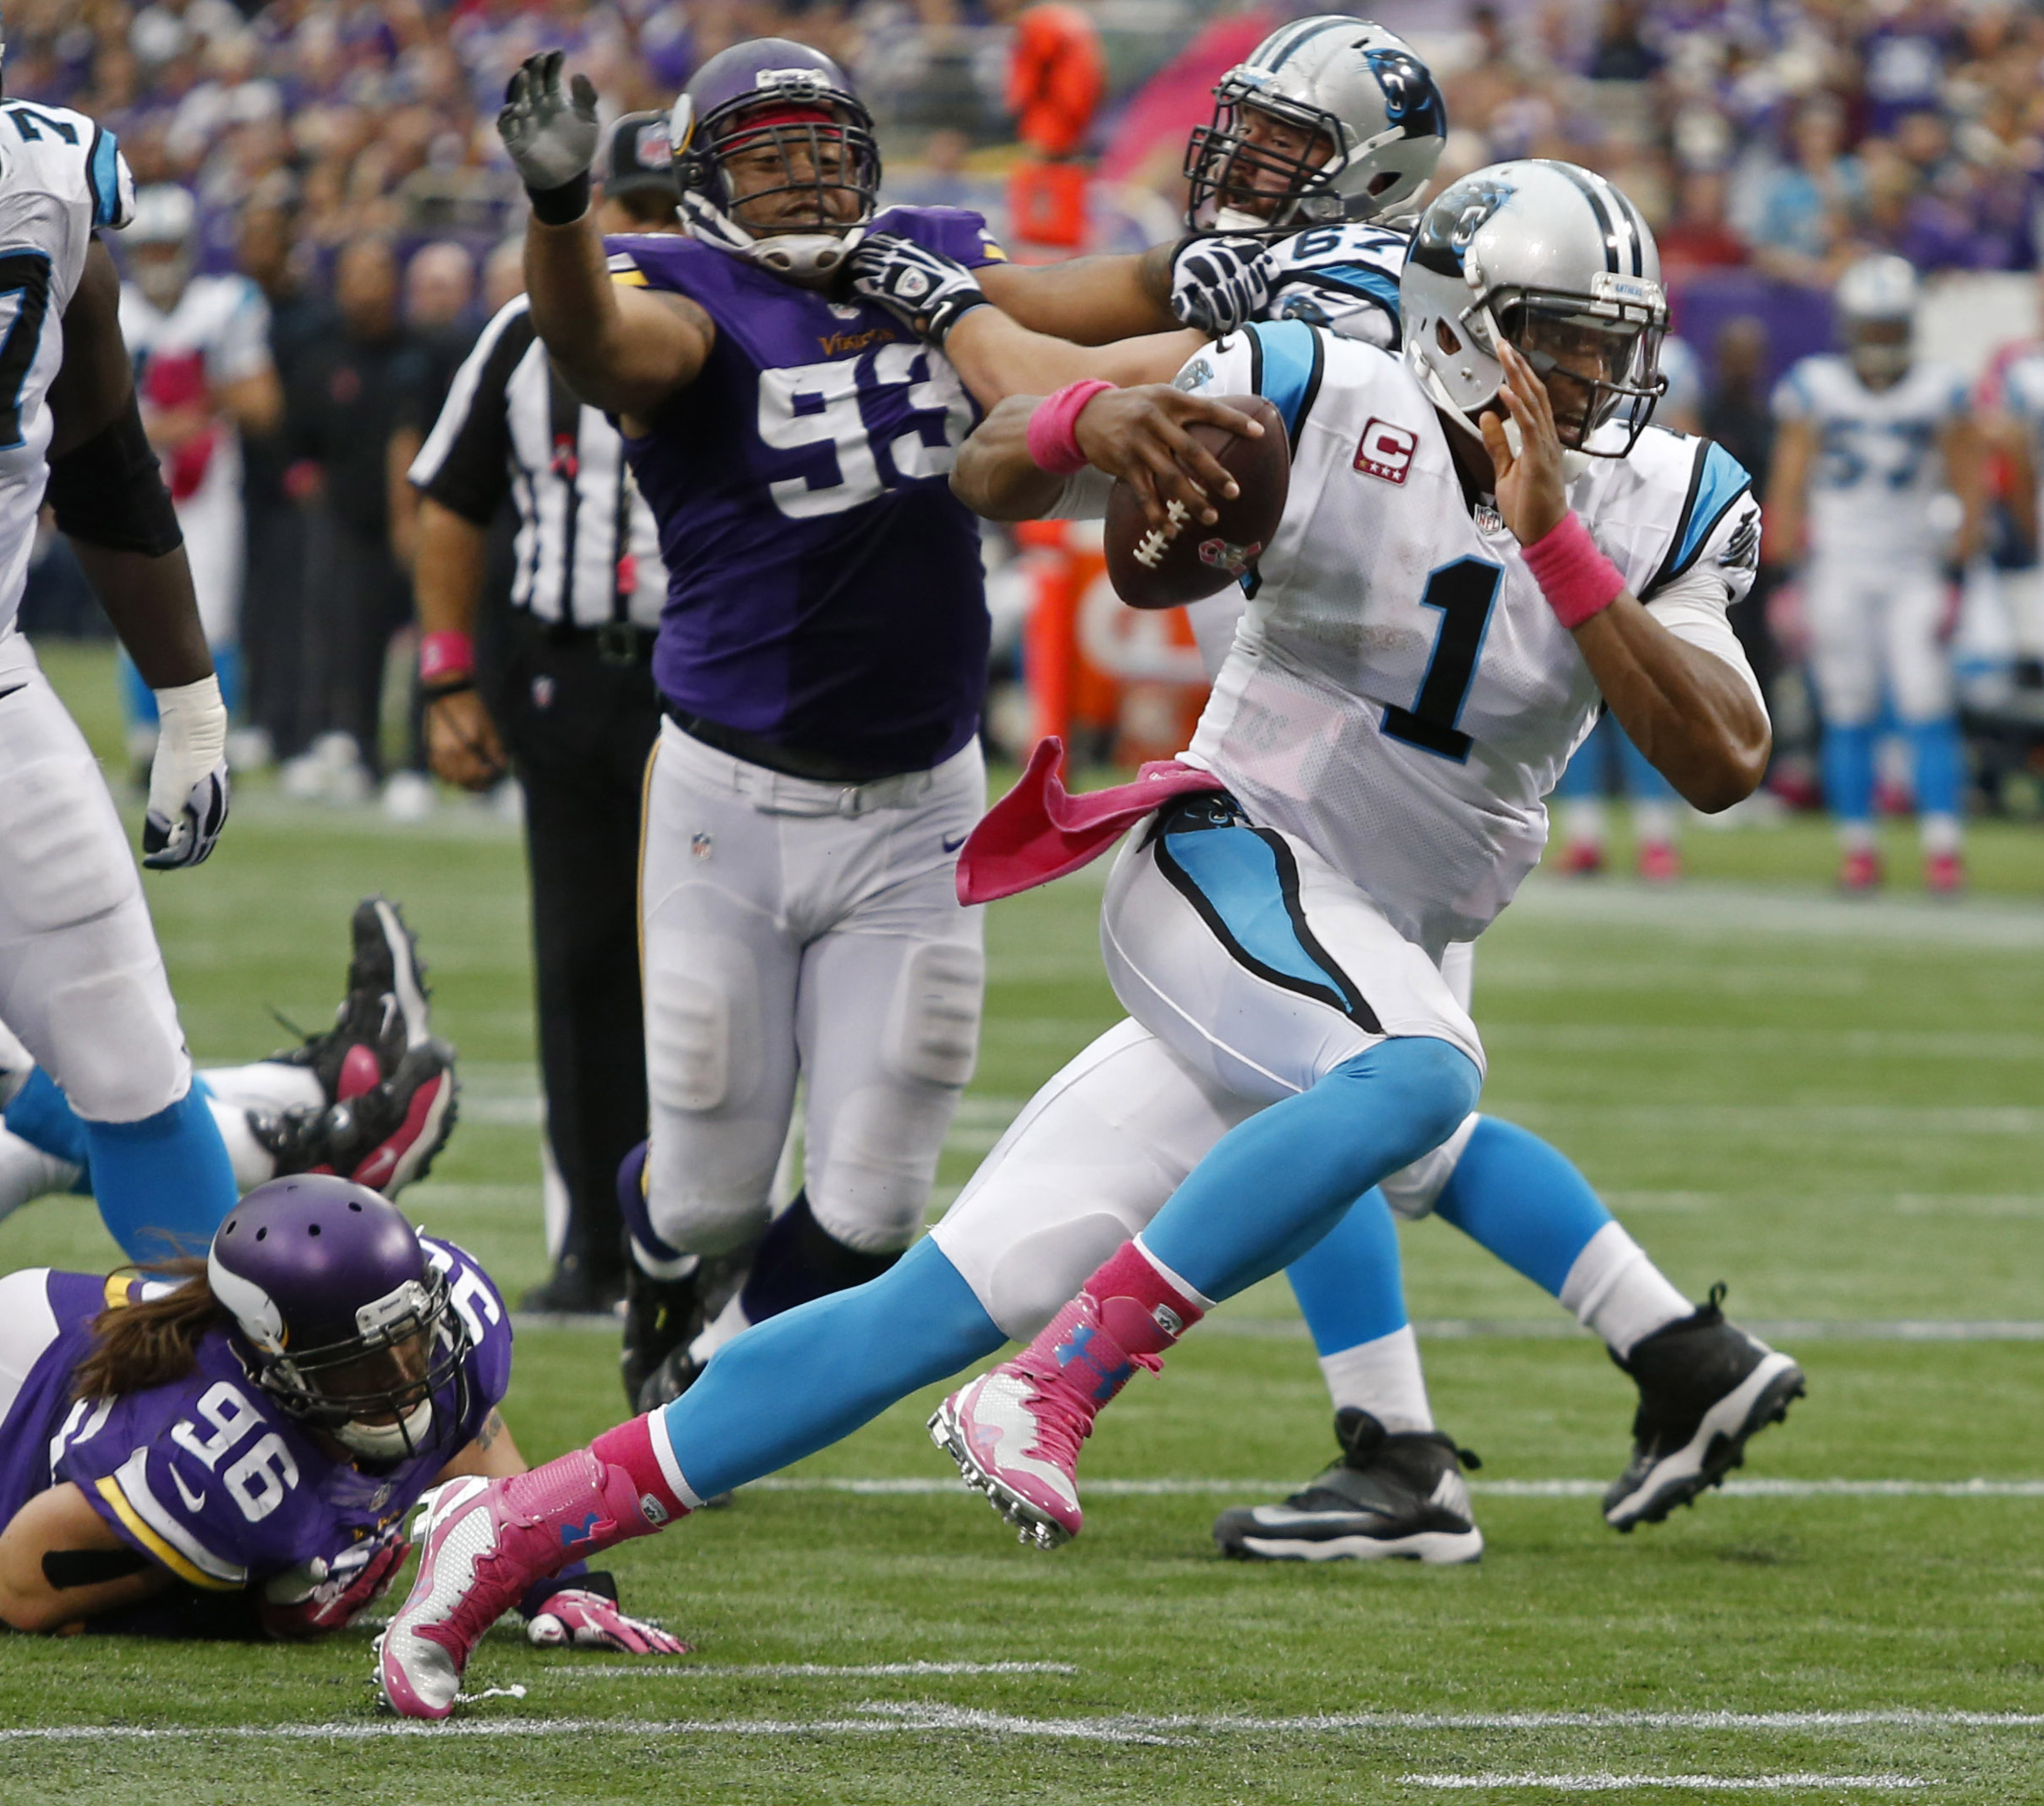 NFL players of the week: Cam Newton shines against Minnesota